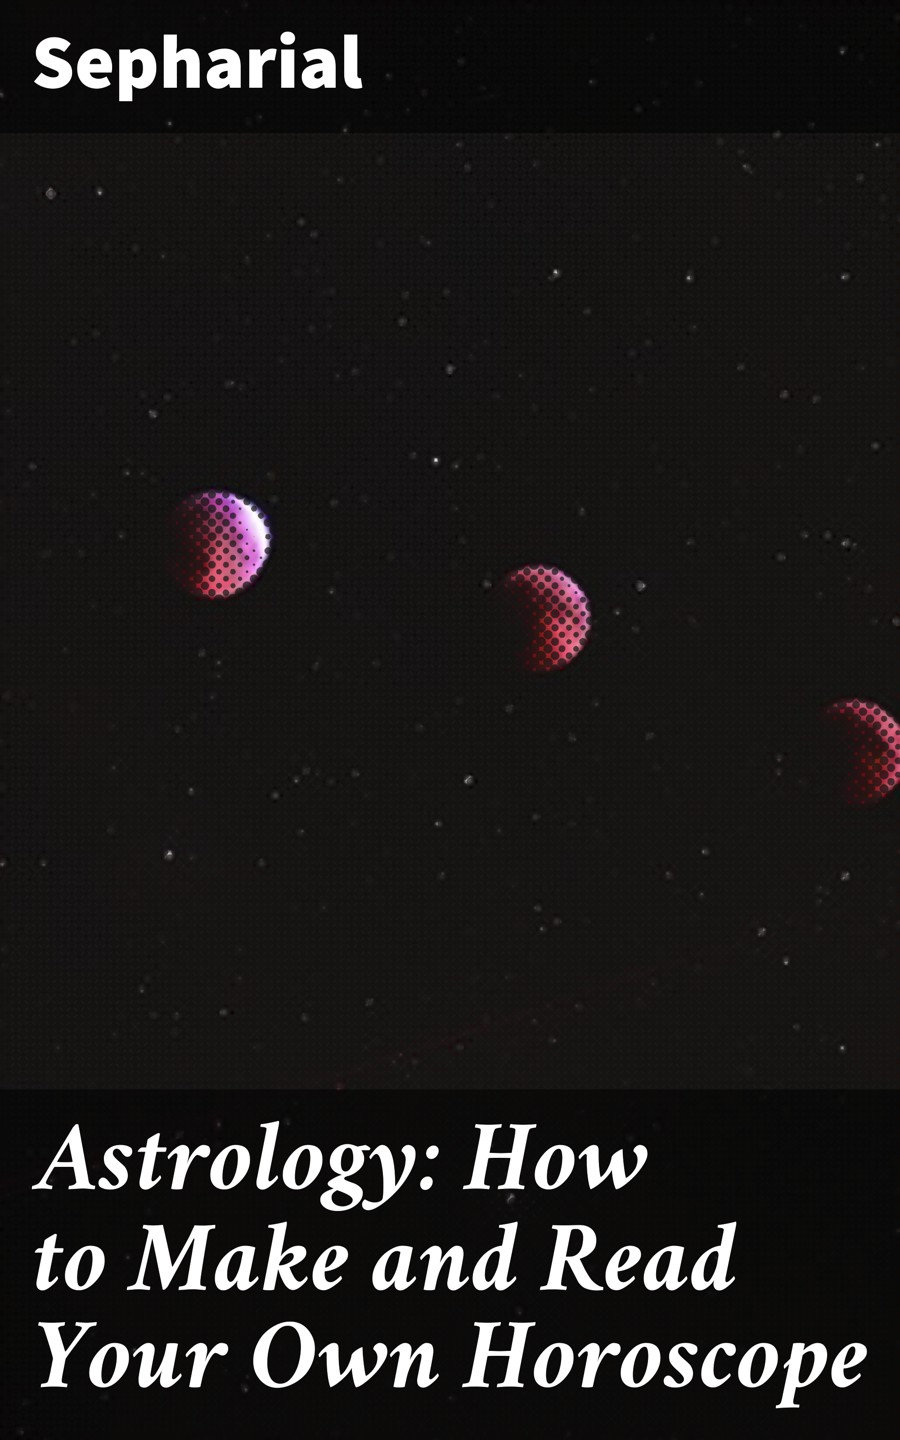 Sepharial Astrology: How to Make and Read Your Own Horoscope how to read kierkegaard